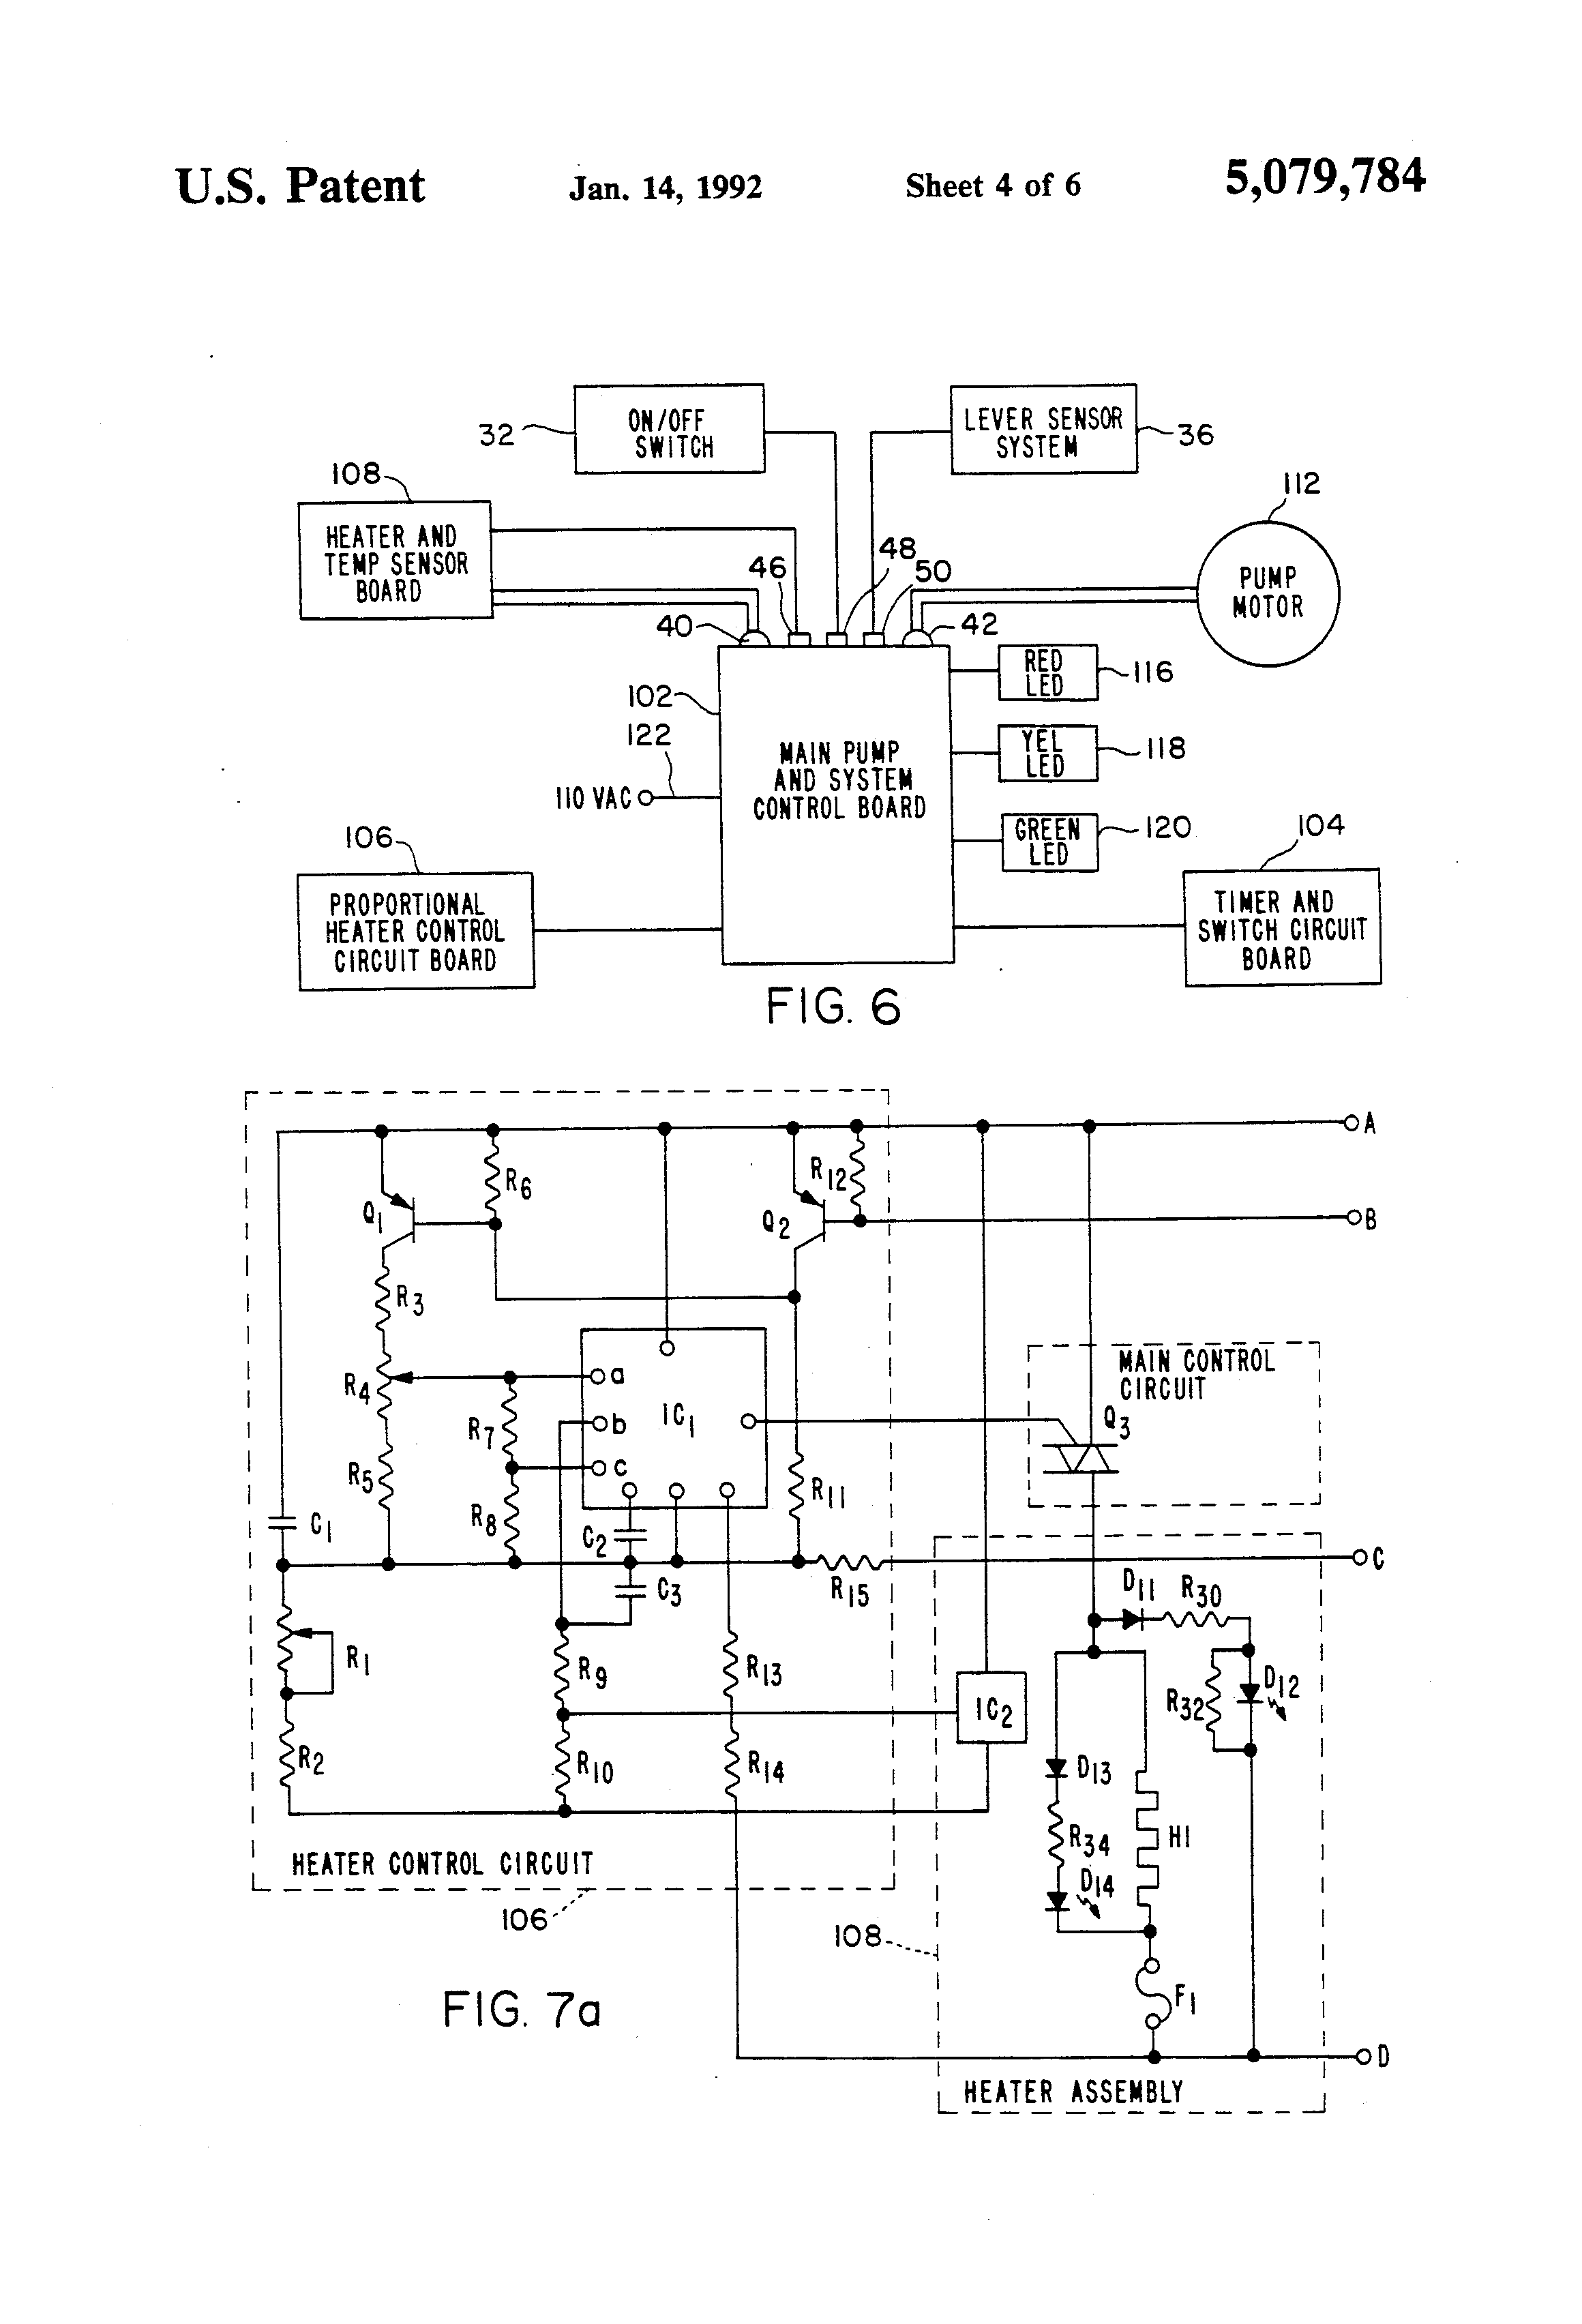 jacuzzi timer wiring diagram wiring diagram and schematic hot tub wiring diagram